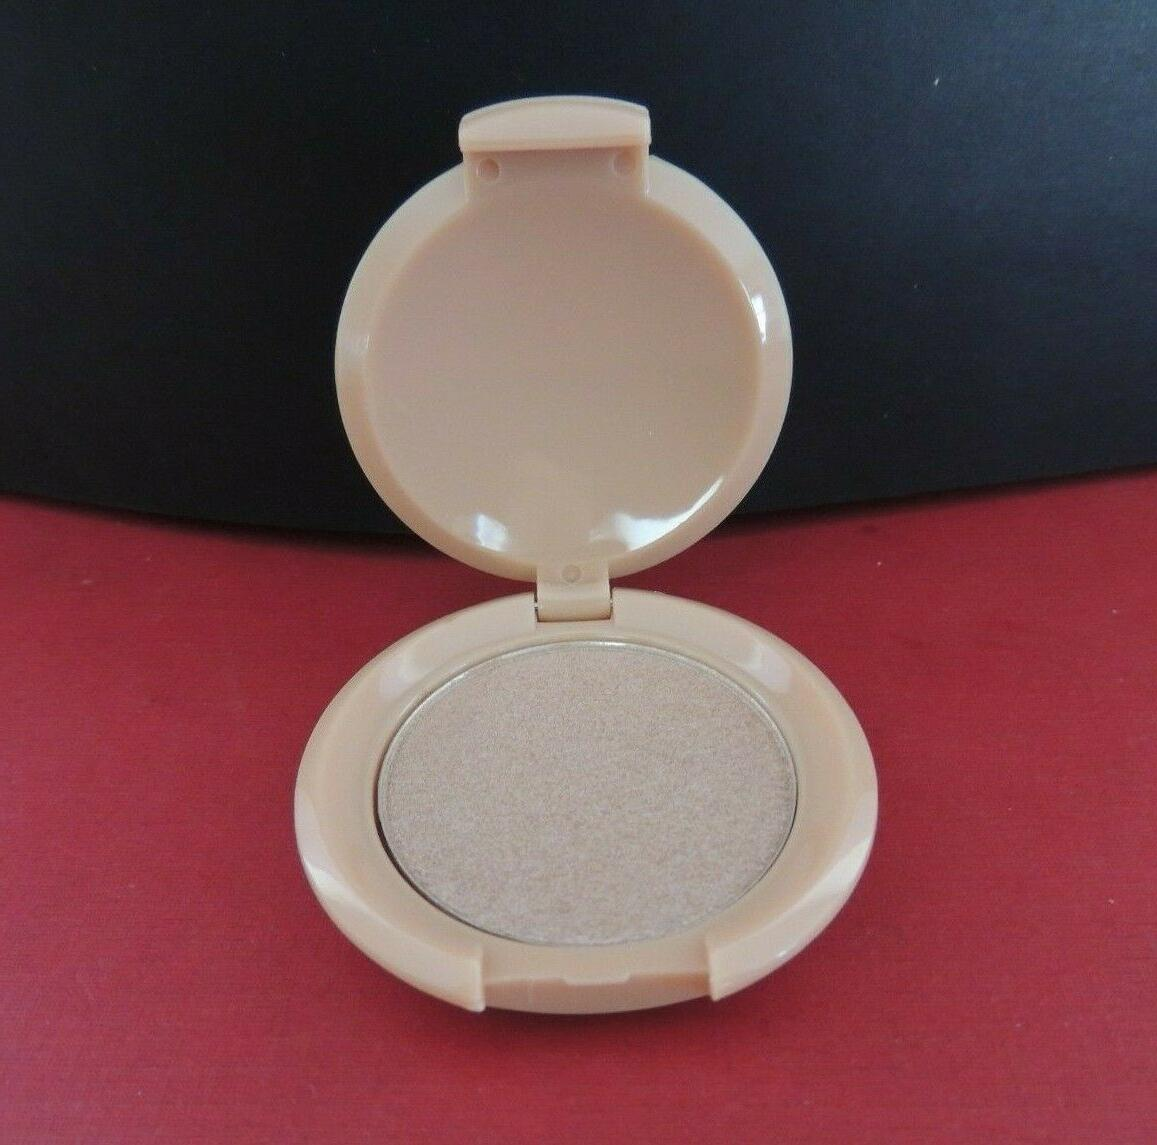 IBY Highlighter PROSECCO, Size /3g